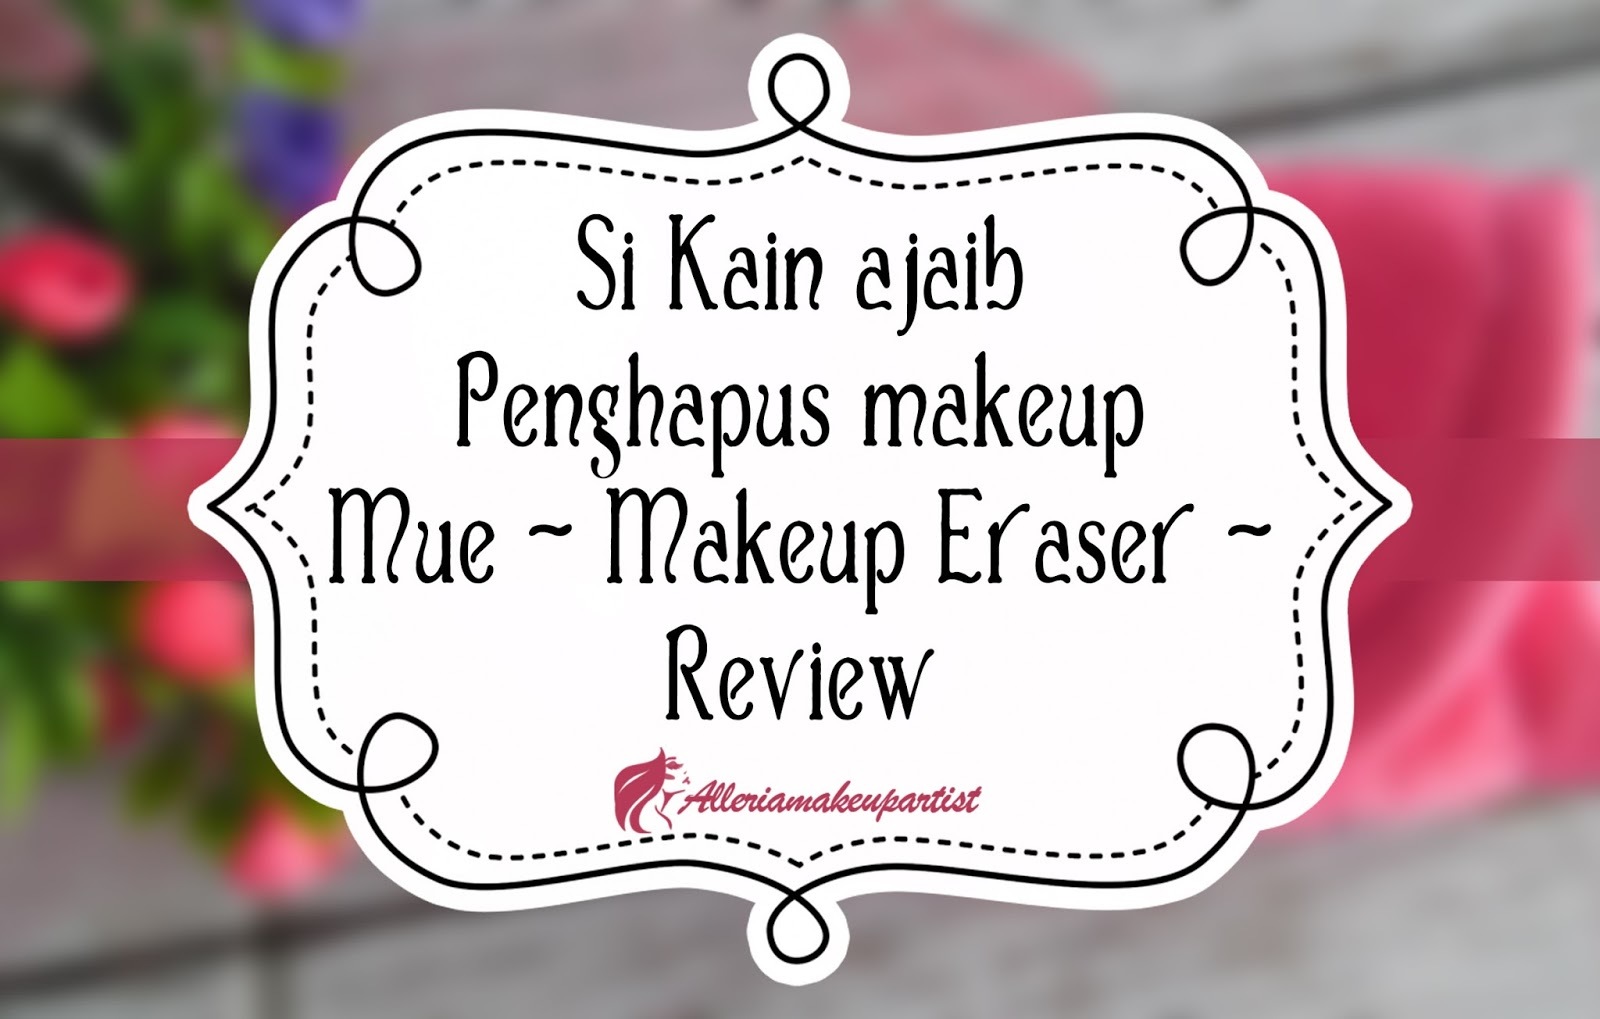 mue-makeup-eraser-review.jpg